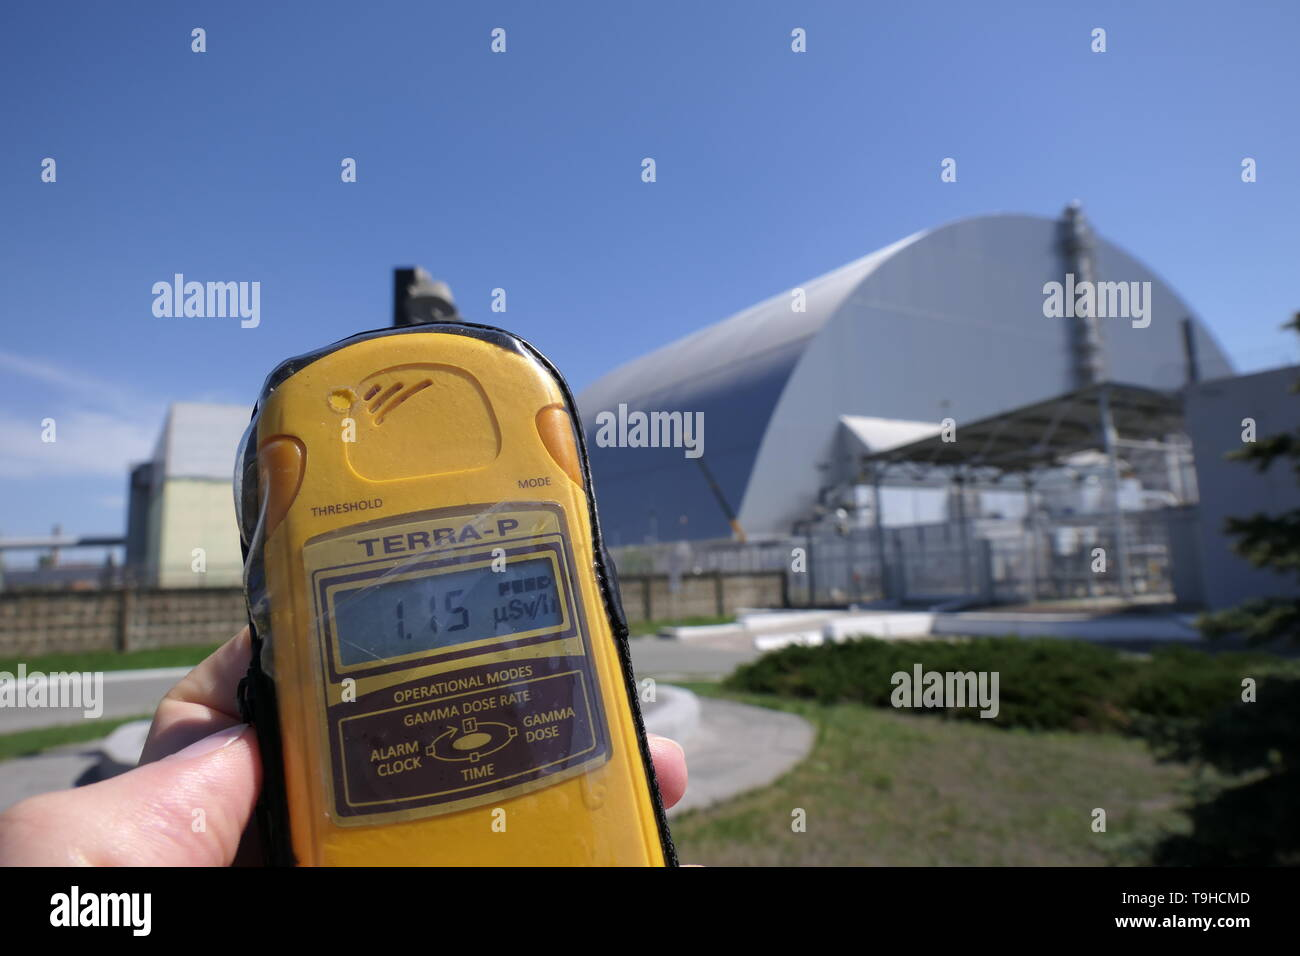 View of the Reactor 4 with a Geiger counter, inside the Chernobyl exclusion zone, Ukraine - Stock Image